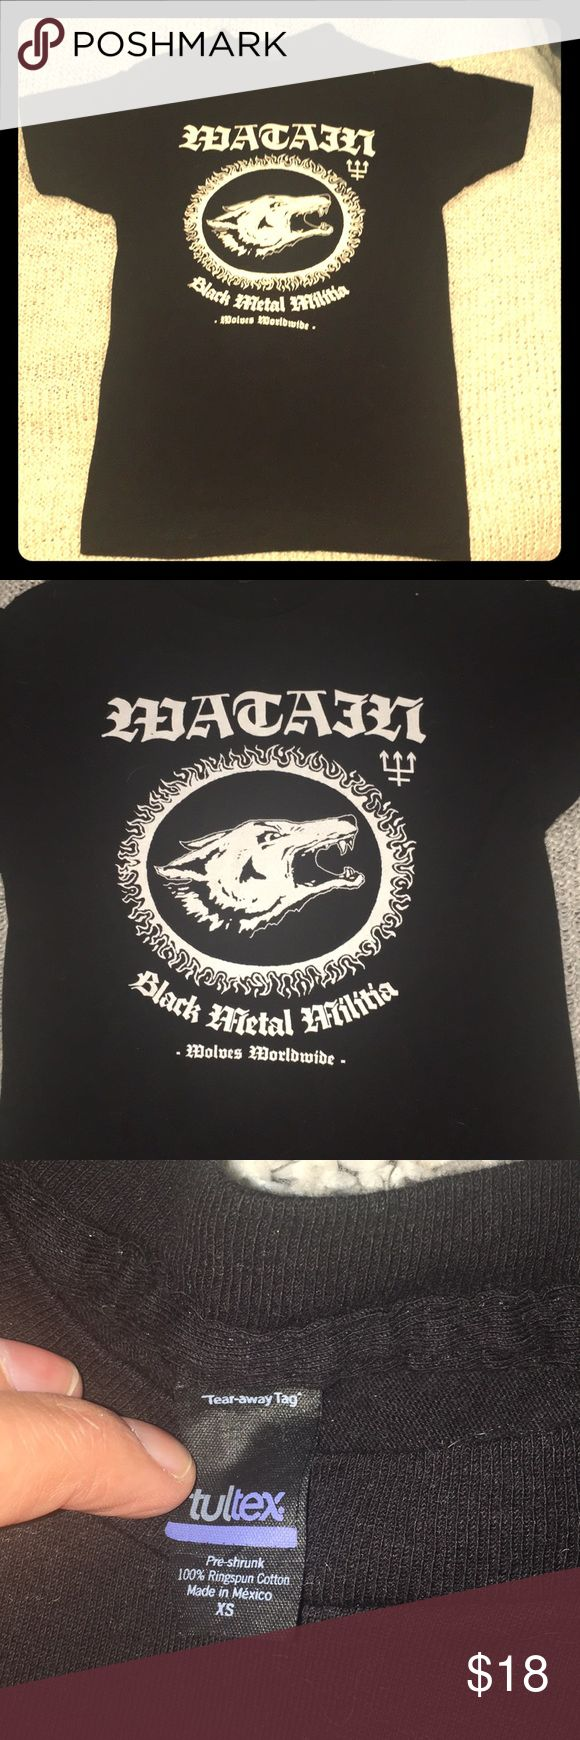 Watain Black Metal band tee XS This XS black tee features the amazing black-metal band Watain. Brand new, never worn, a true XS. Cotton, easy to wash and wear, rock!!!! 💕💕💕 Tops Tees - Short Sleeve